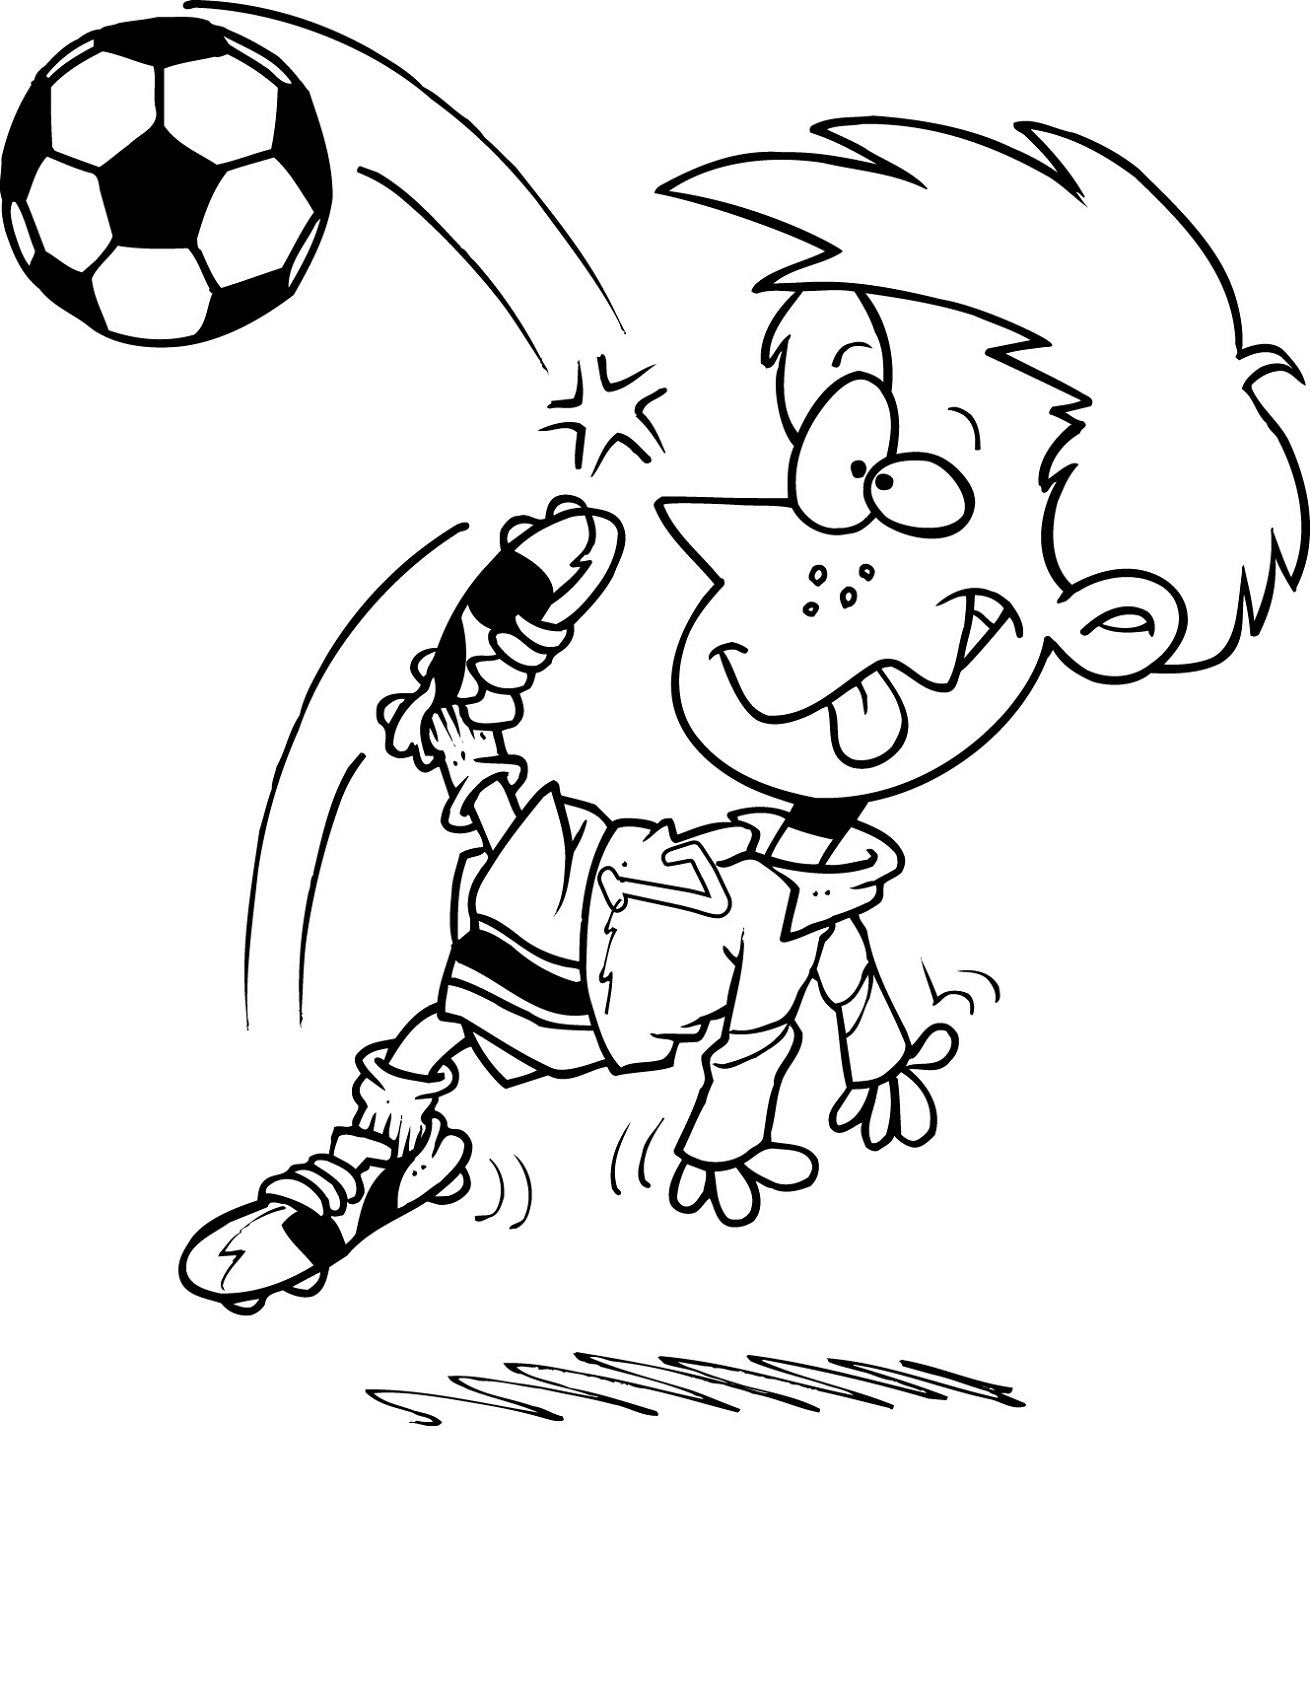 Coloring Pages for Boys Soccer